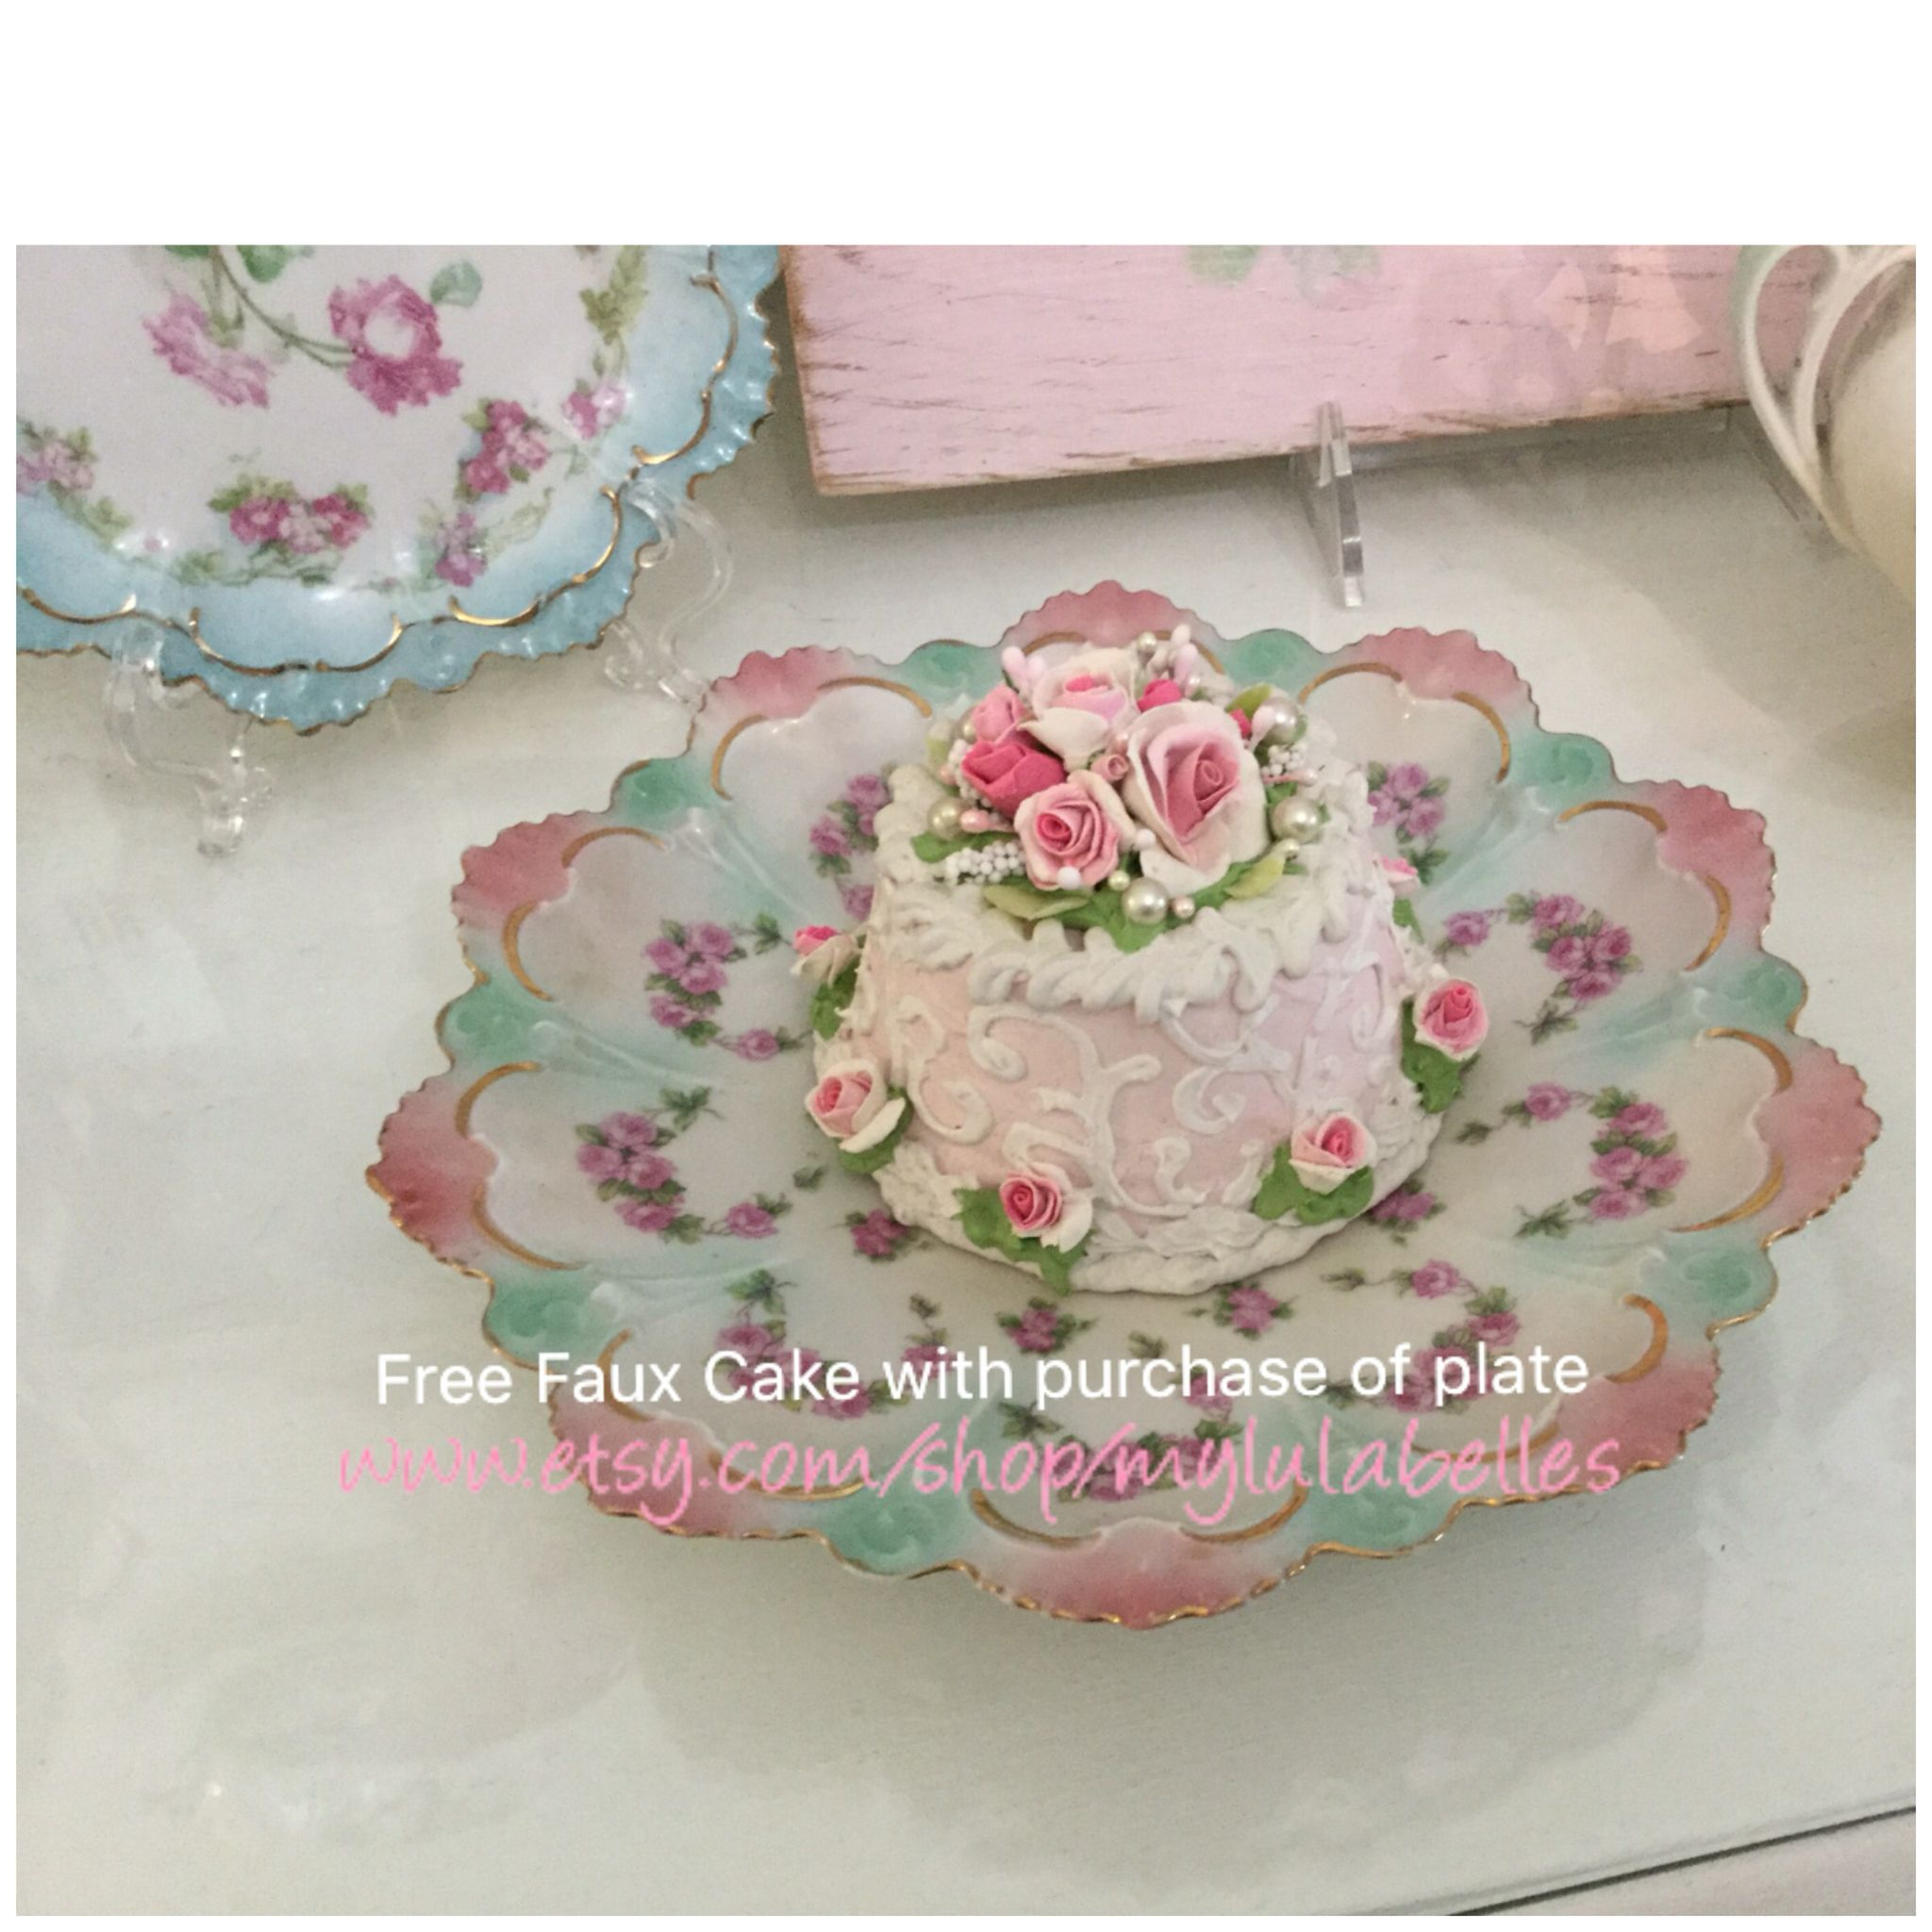 Vintage MZ Austria pink and Aqua plate with free hand made faux rose cake Www.etsy.com/shop/mylulabelles